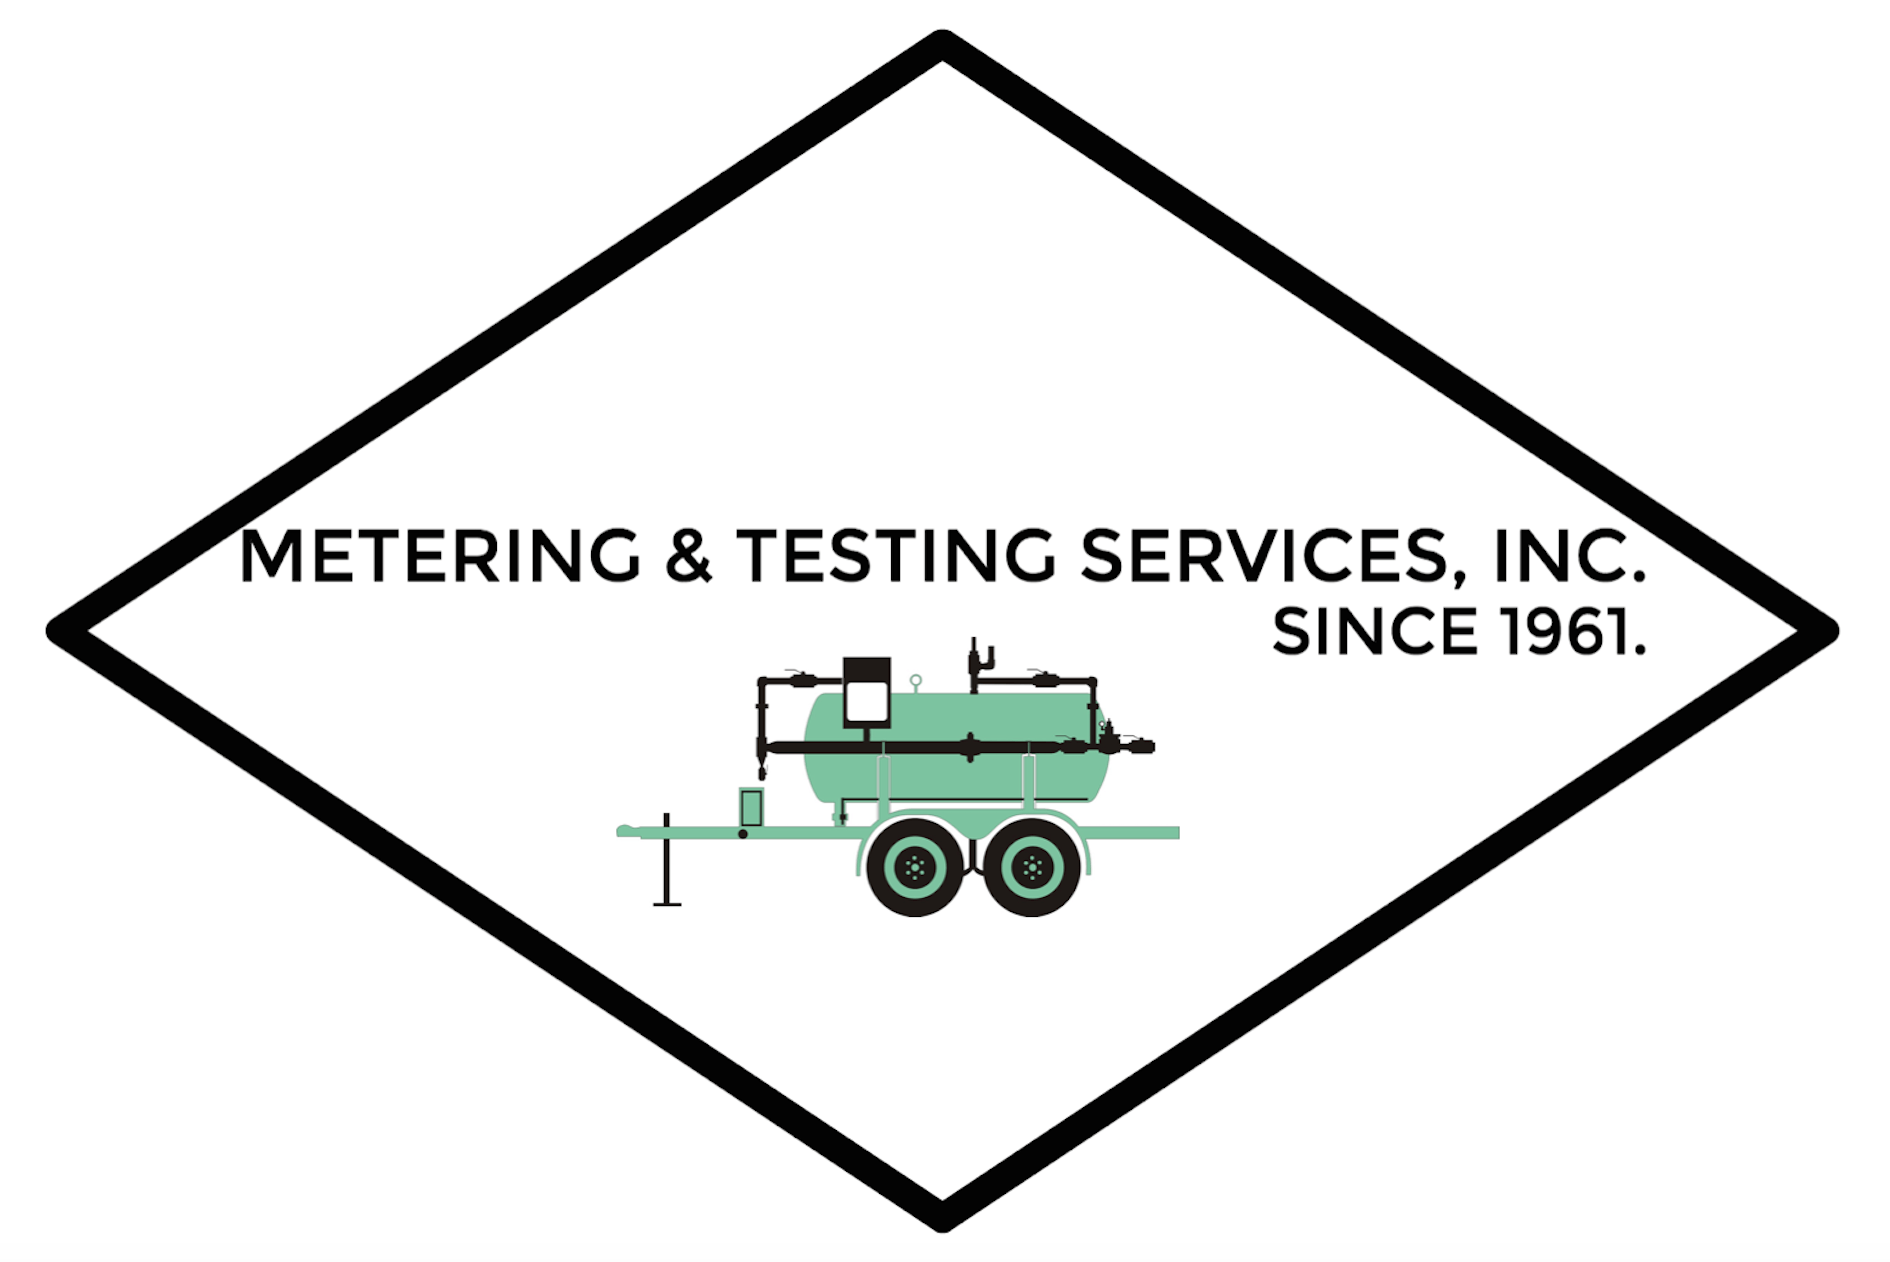 METERING & TESTING SERVICES, INC    Permian Basin Oil and